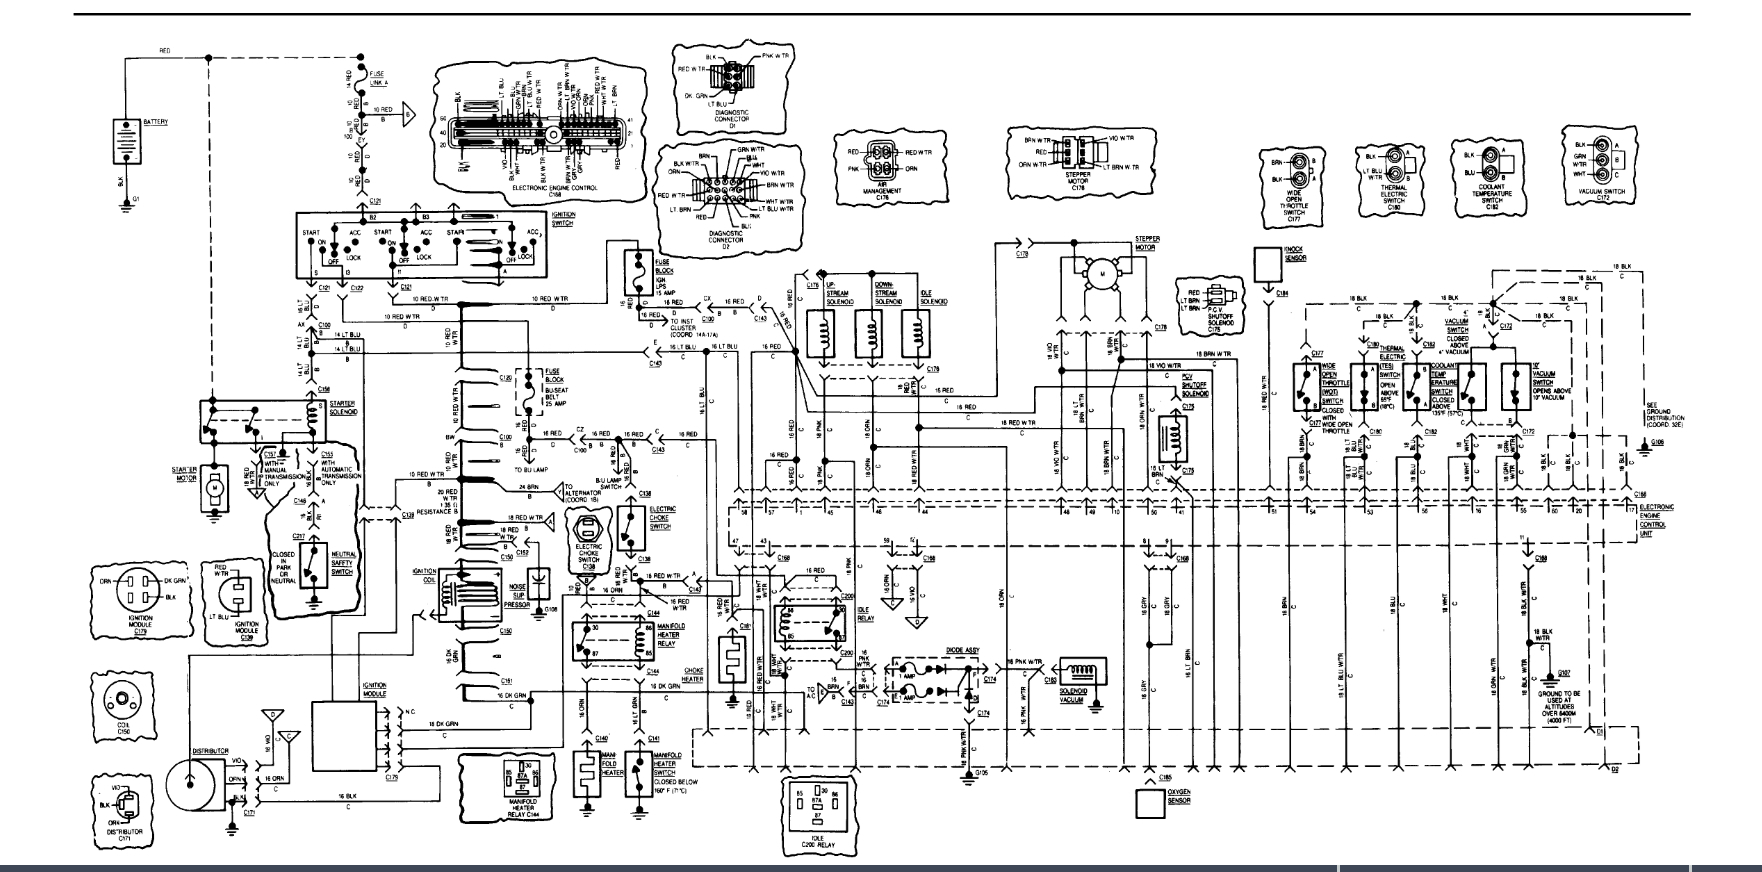 hight resolution of no spark i was driving down the road and all of a sudden the jeep cj7 wiring diagram blow up